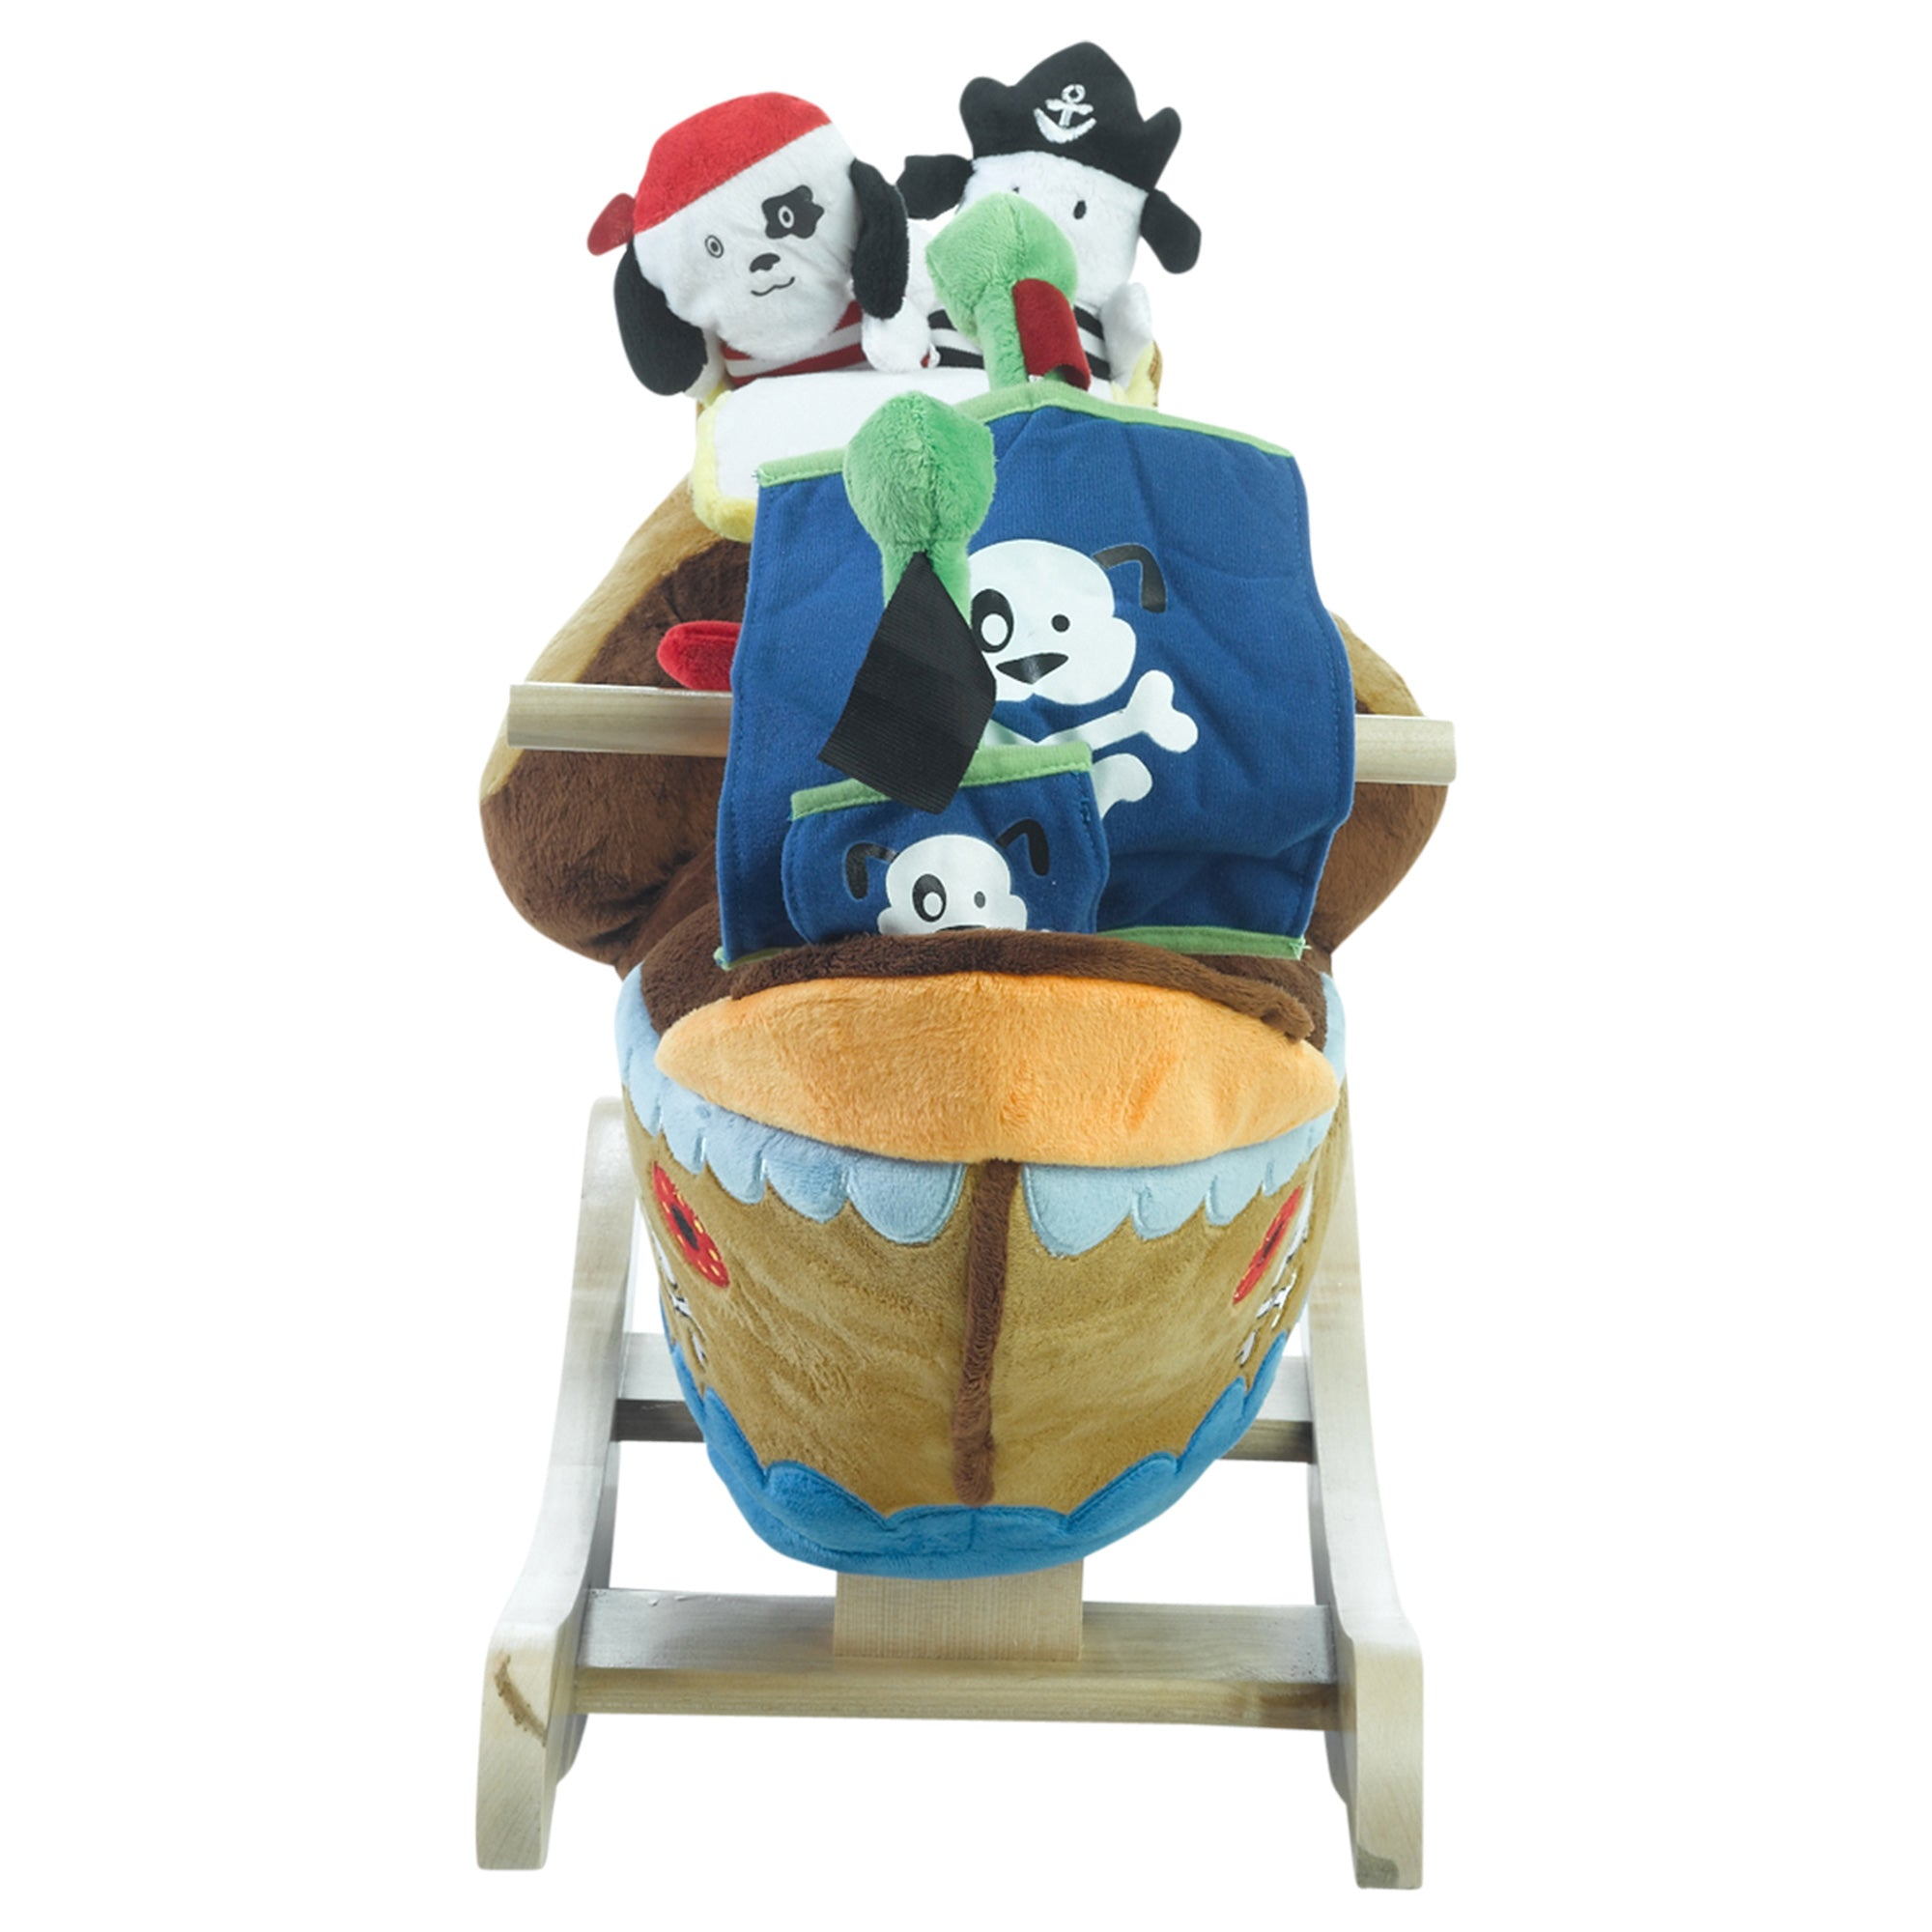 Ahoy Doggie Pirate Ship Play and Rock